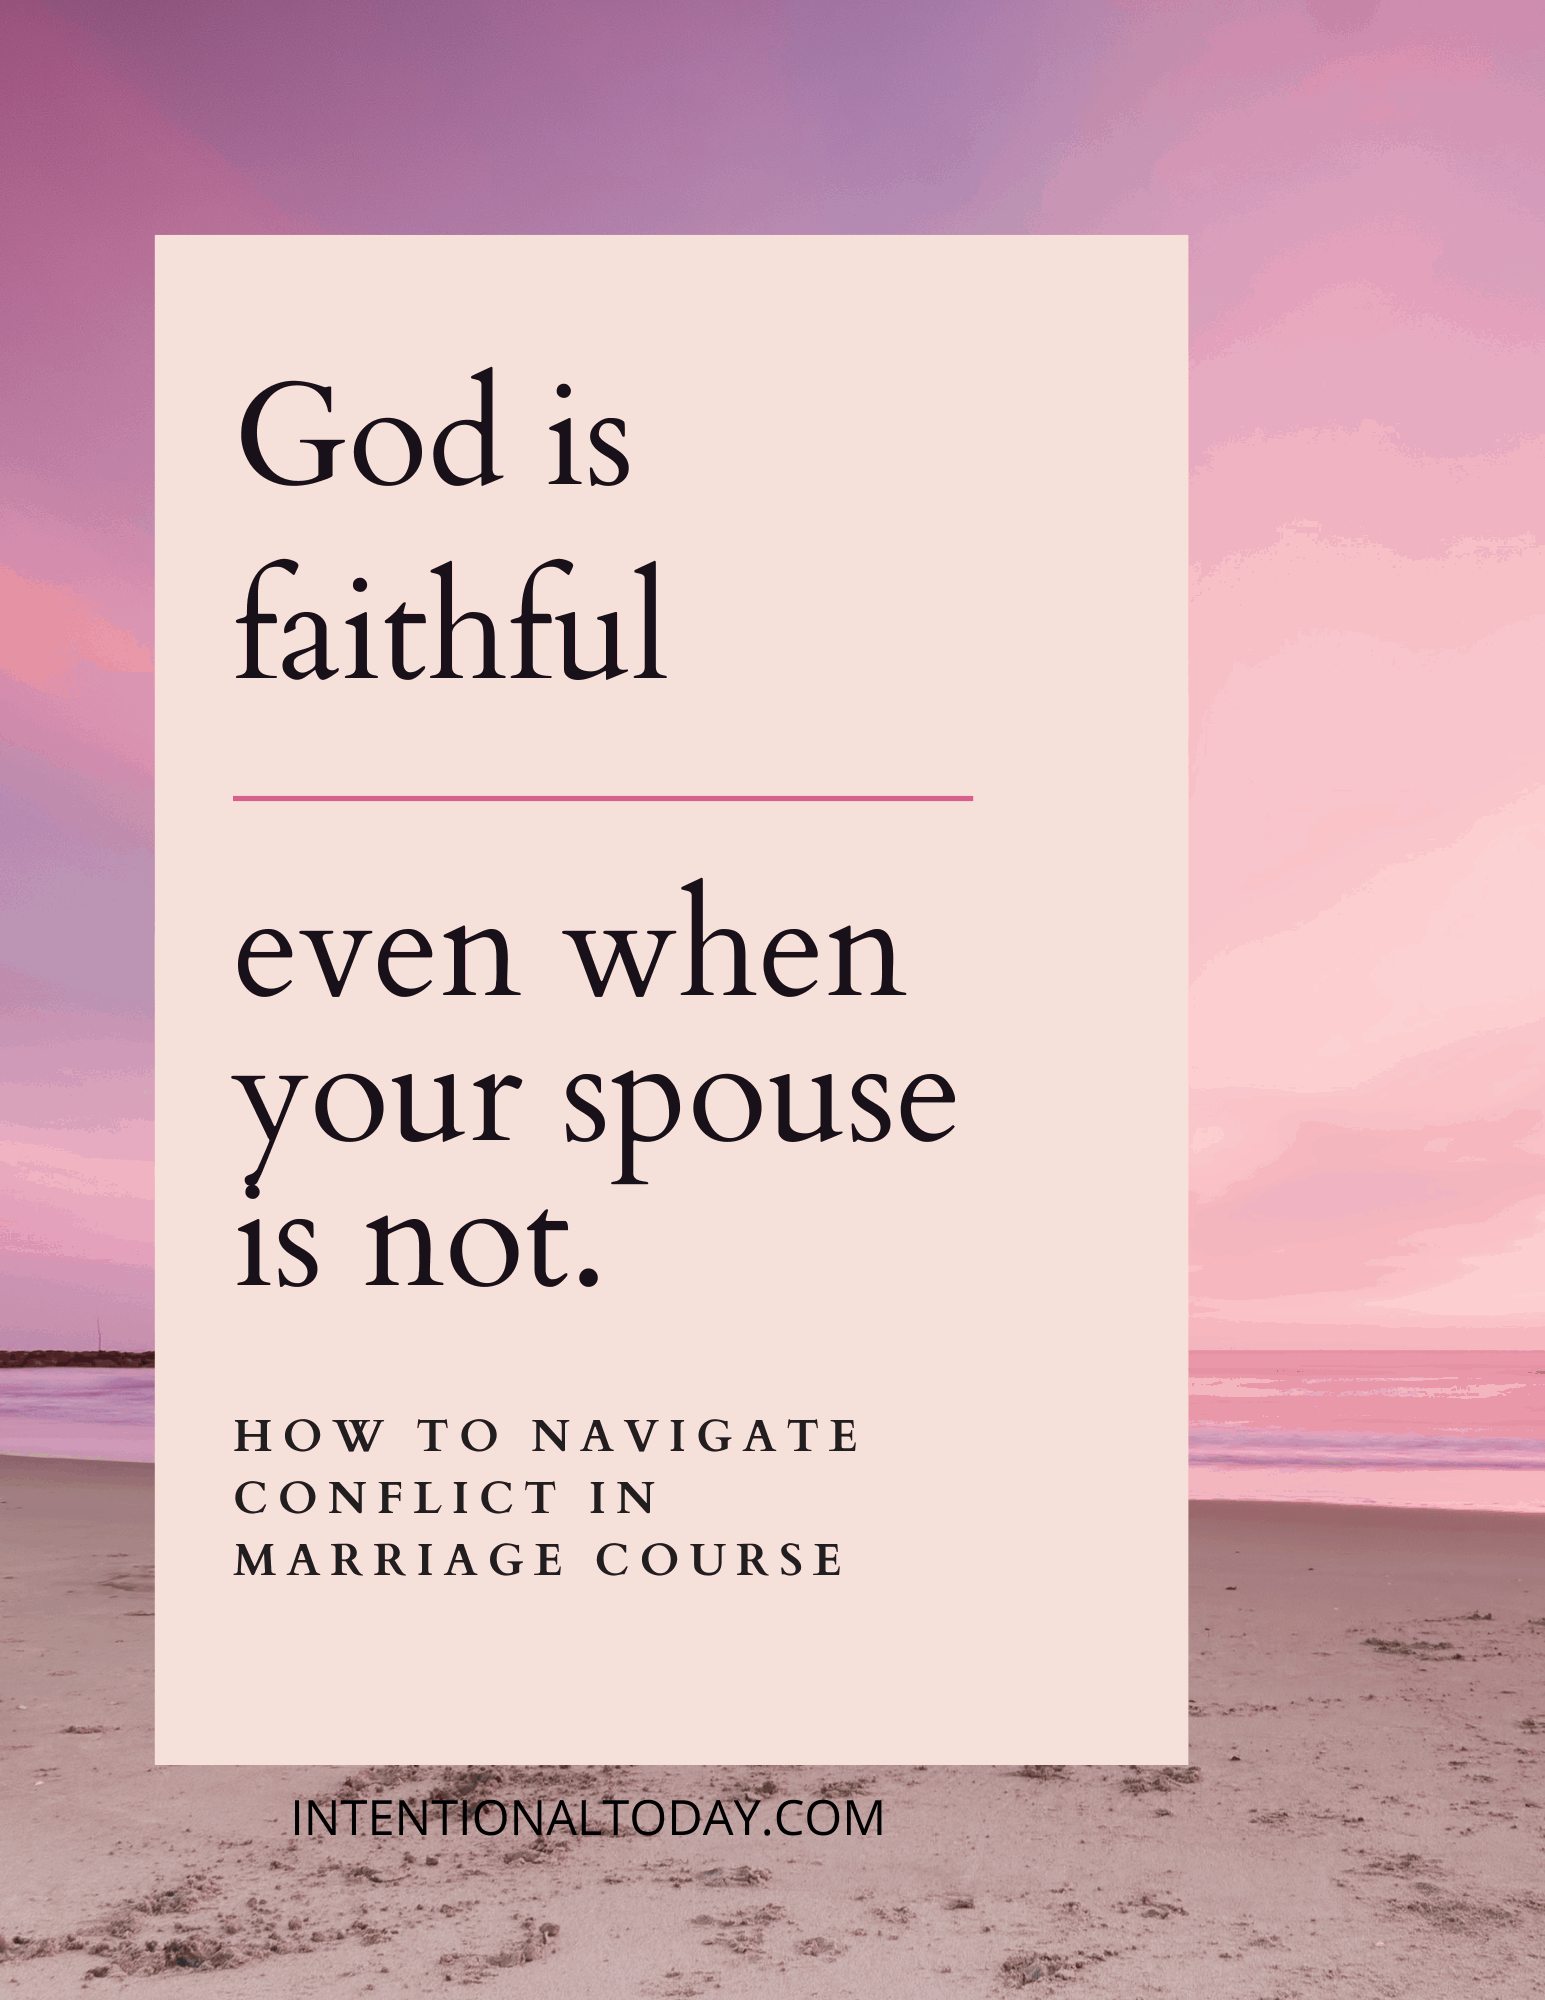 God is faithful, even when your spouse is not. 6 tips to help you navigate dishonor in marriage and a marriage course